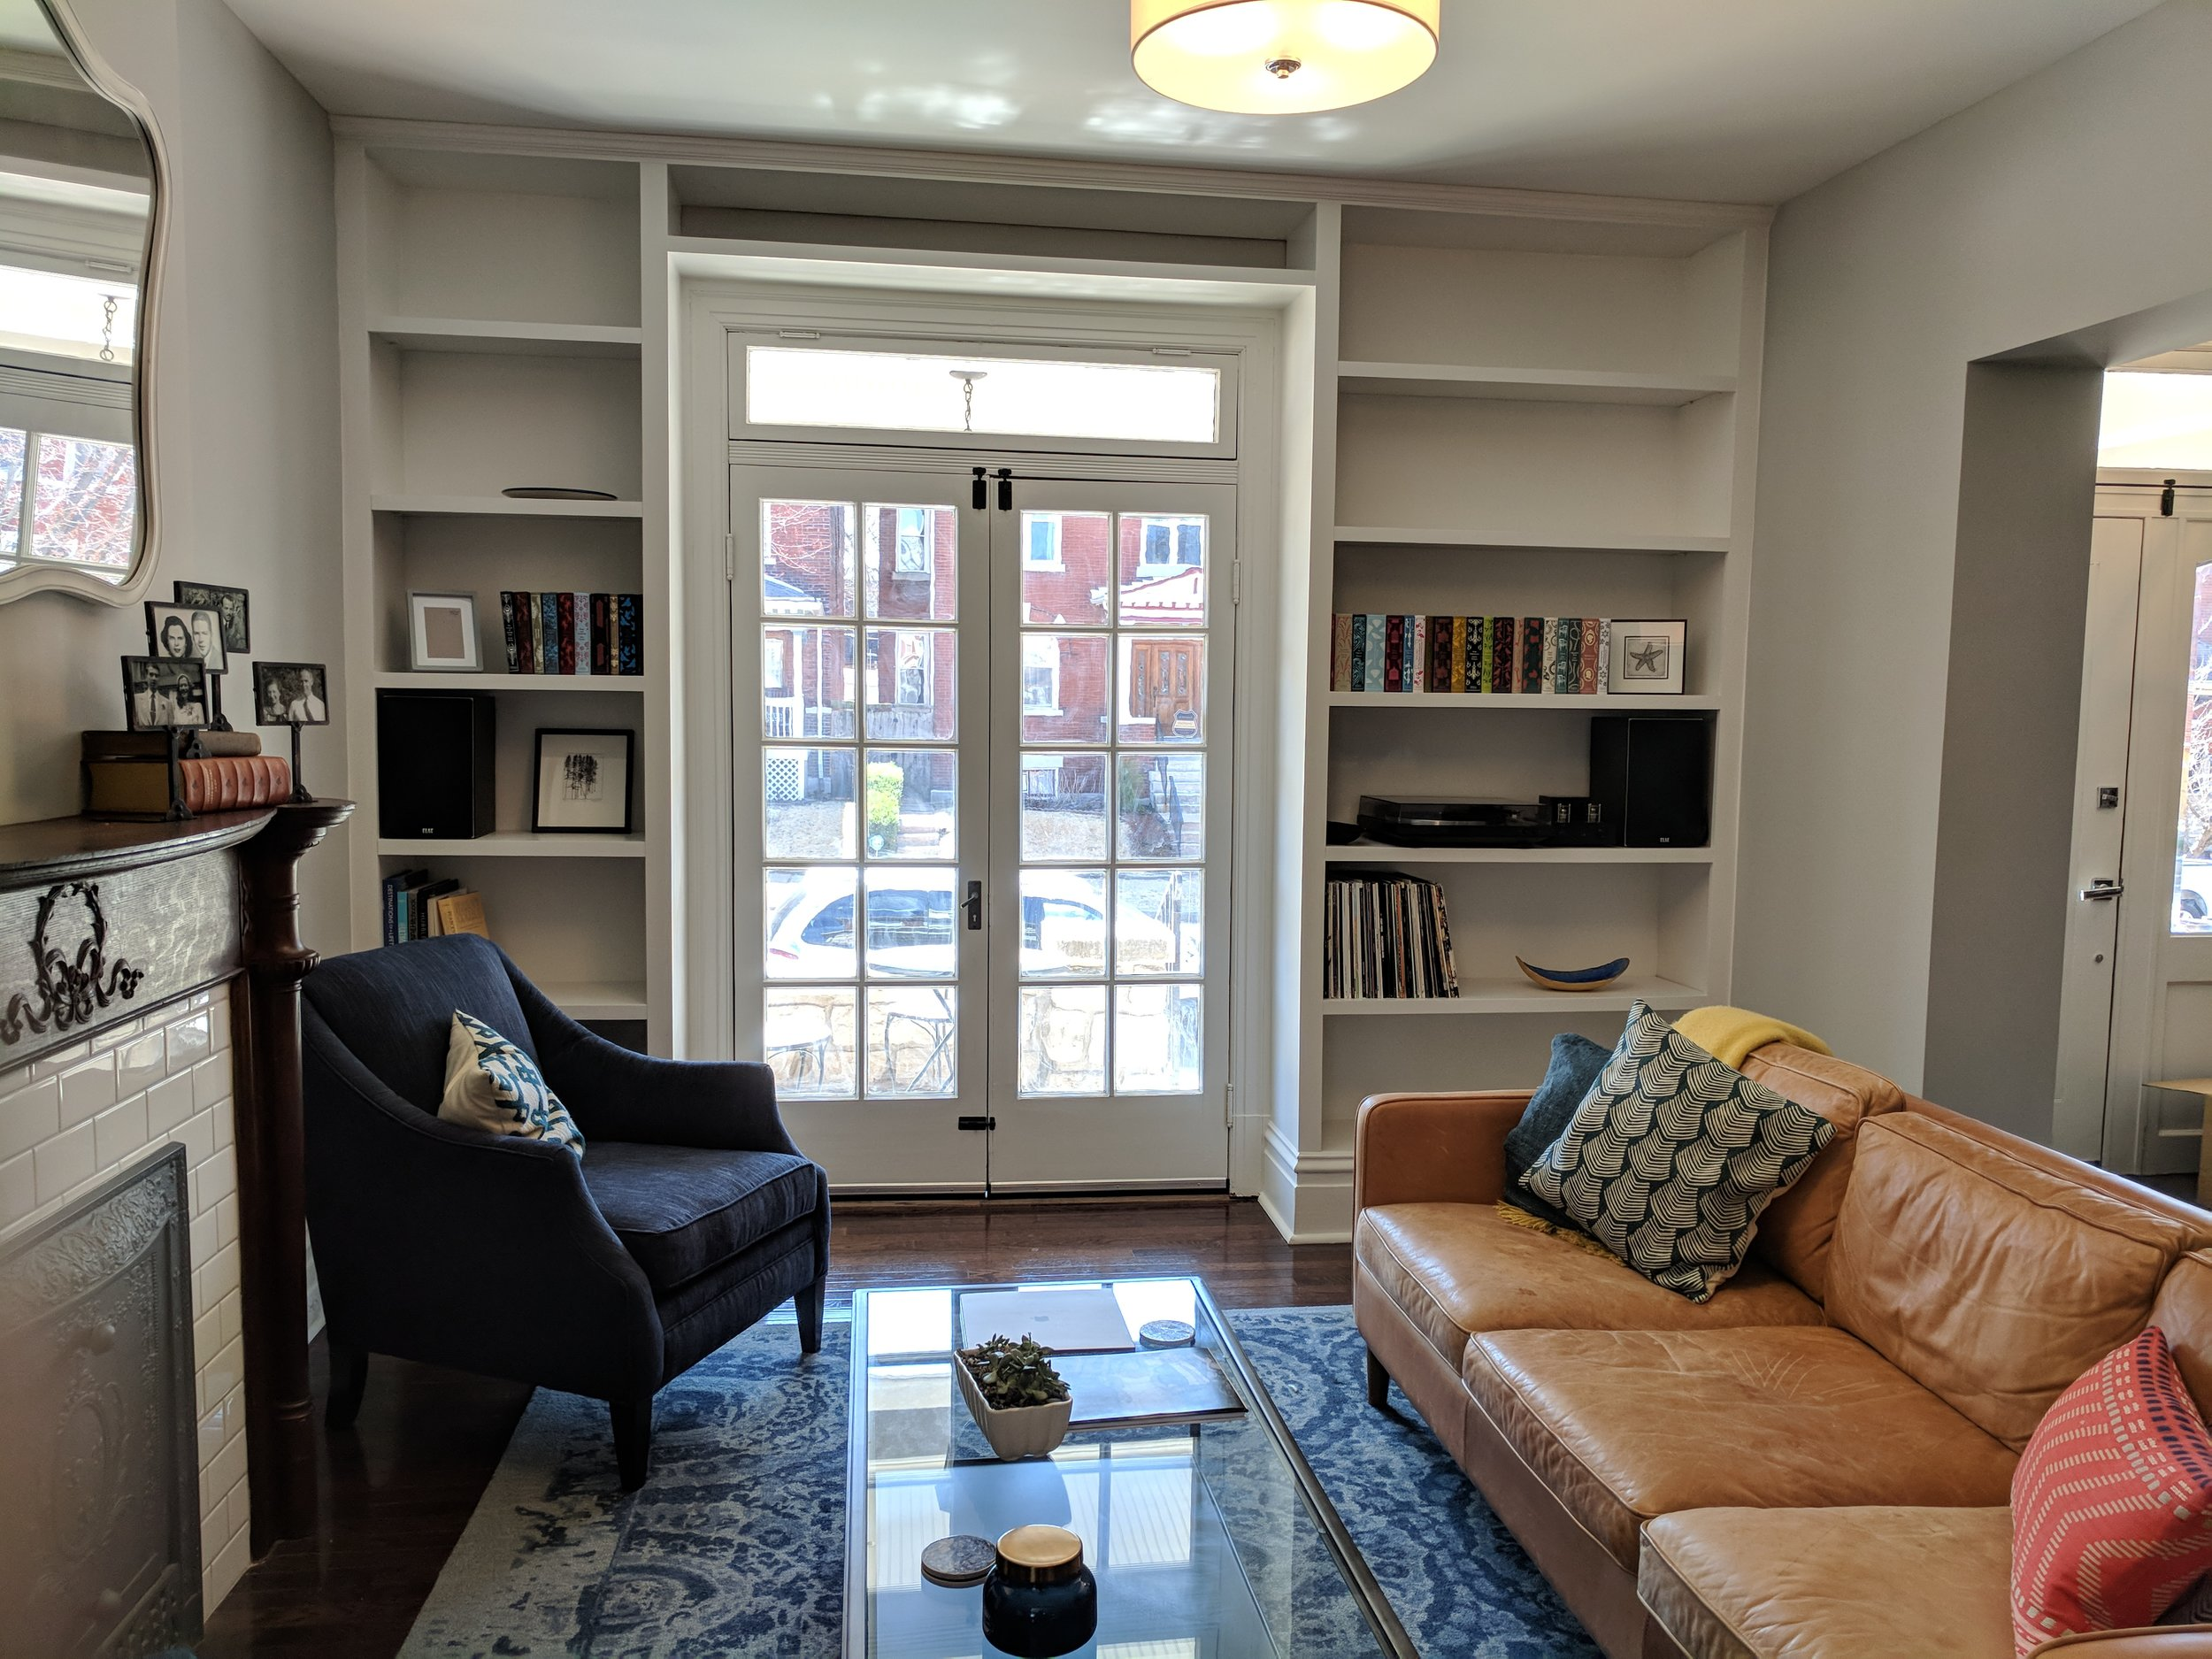 built in bookcase in this South City home